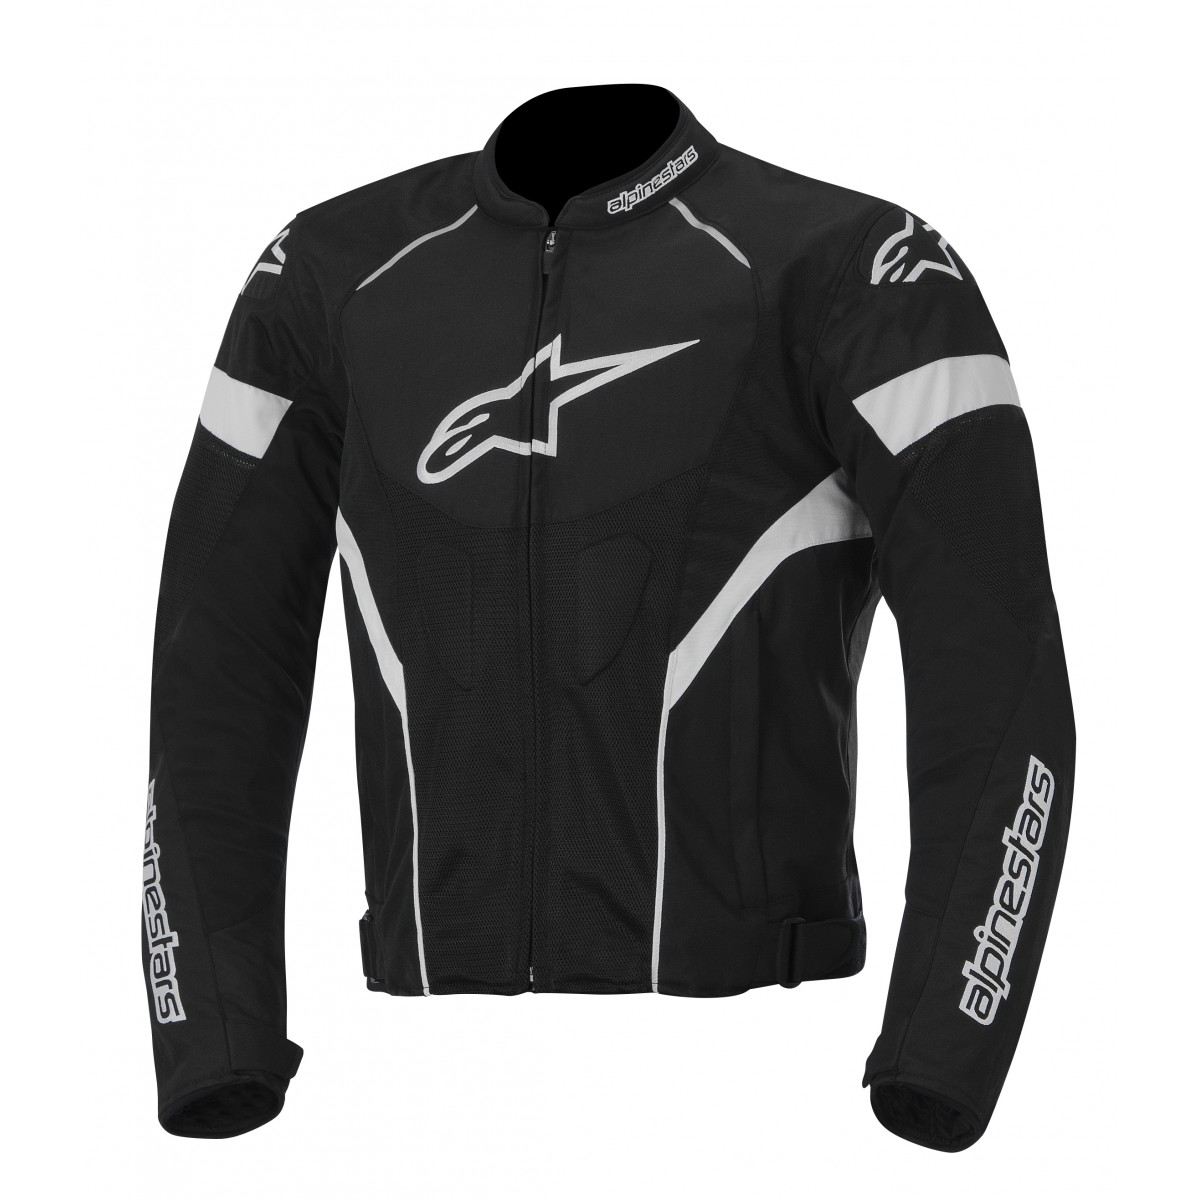 Jaqueta Alpinestars T GP Plus R Air (Preto Branco/ Ventilada)  - Super Bike - Loja Oficial Alpinestars